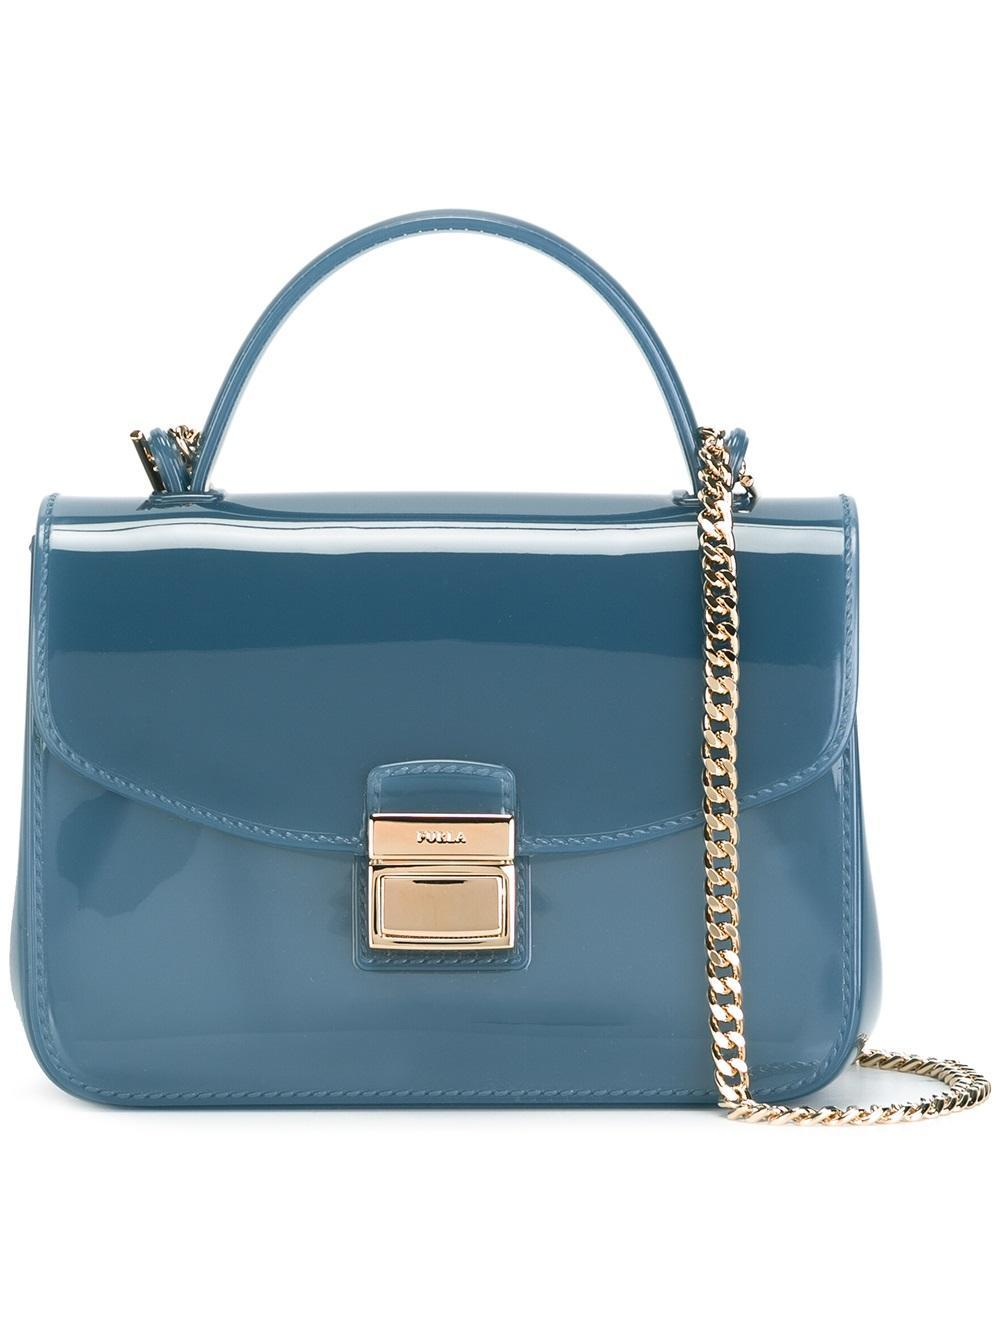 Furla Mini Candy Sugar Crossbody Bag in Blue | Lyst